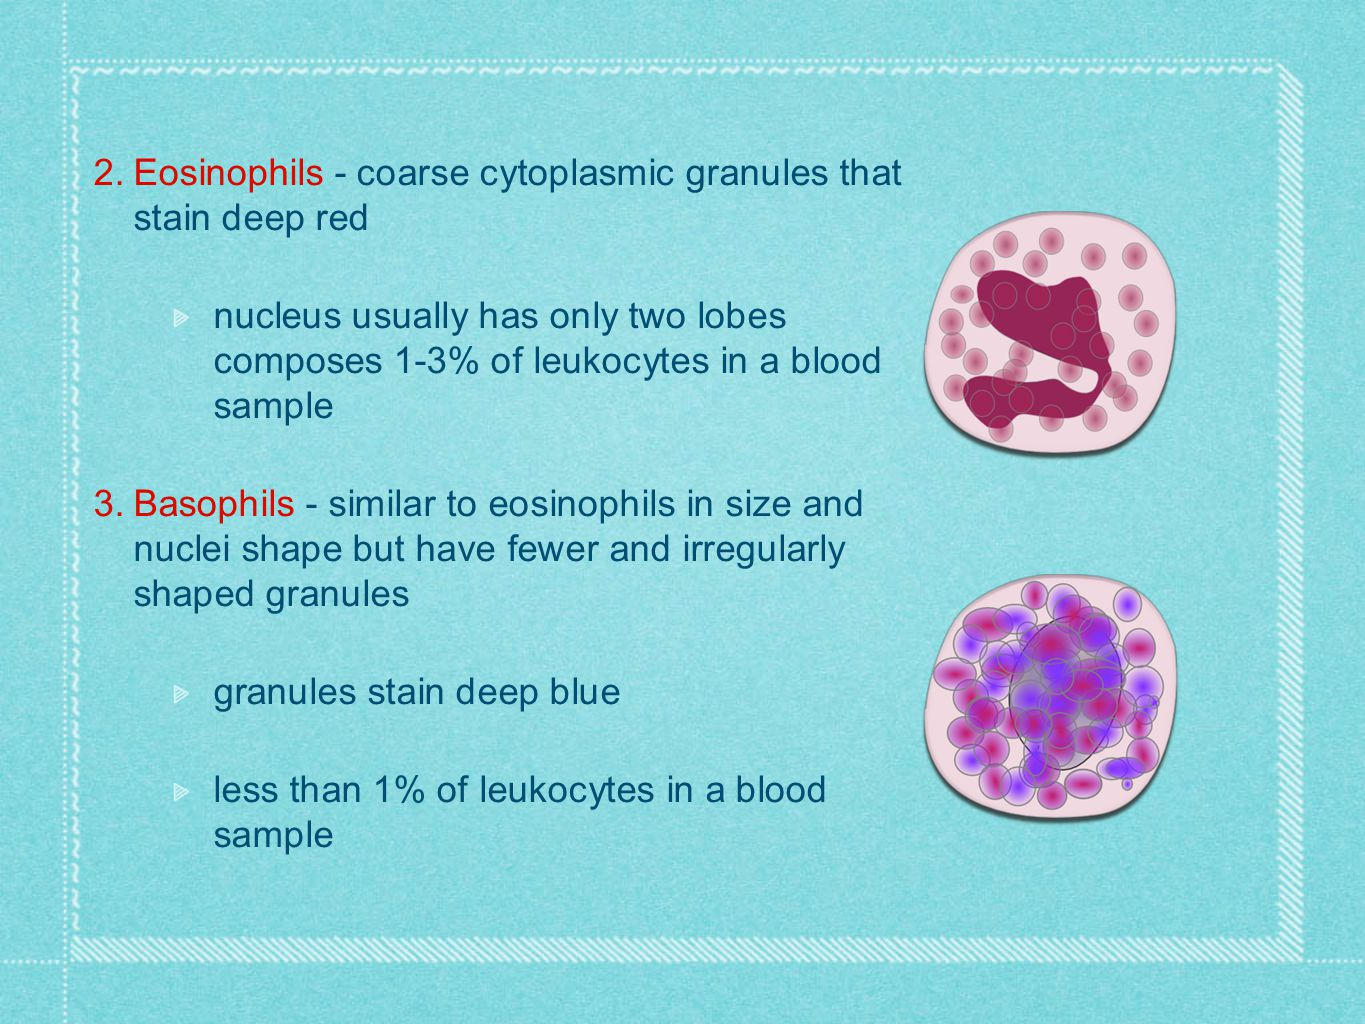 Eosinophils - coarse cytoplasmic granules that stain deep red